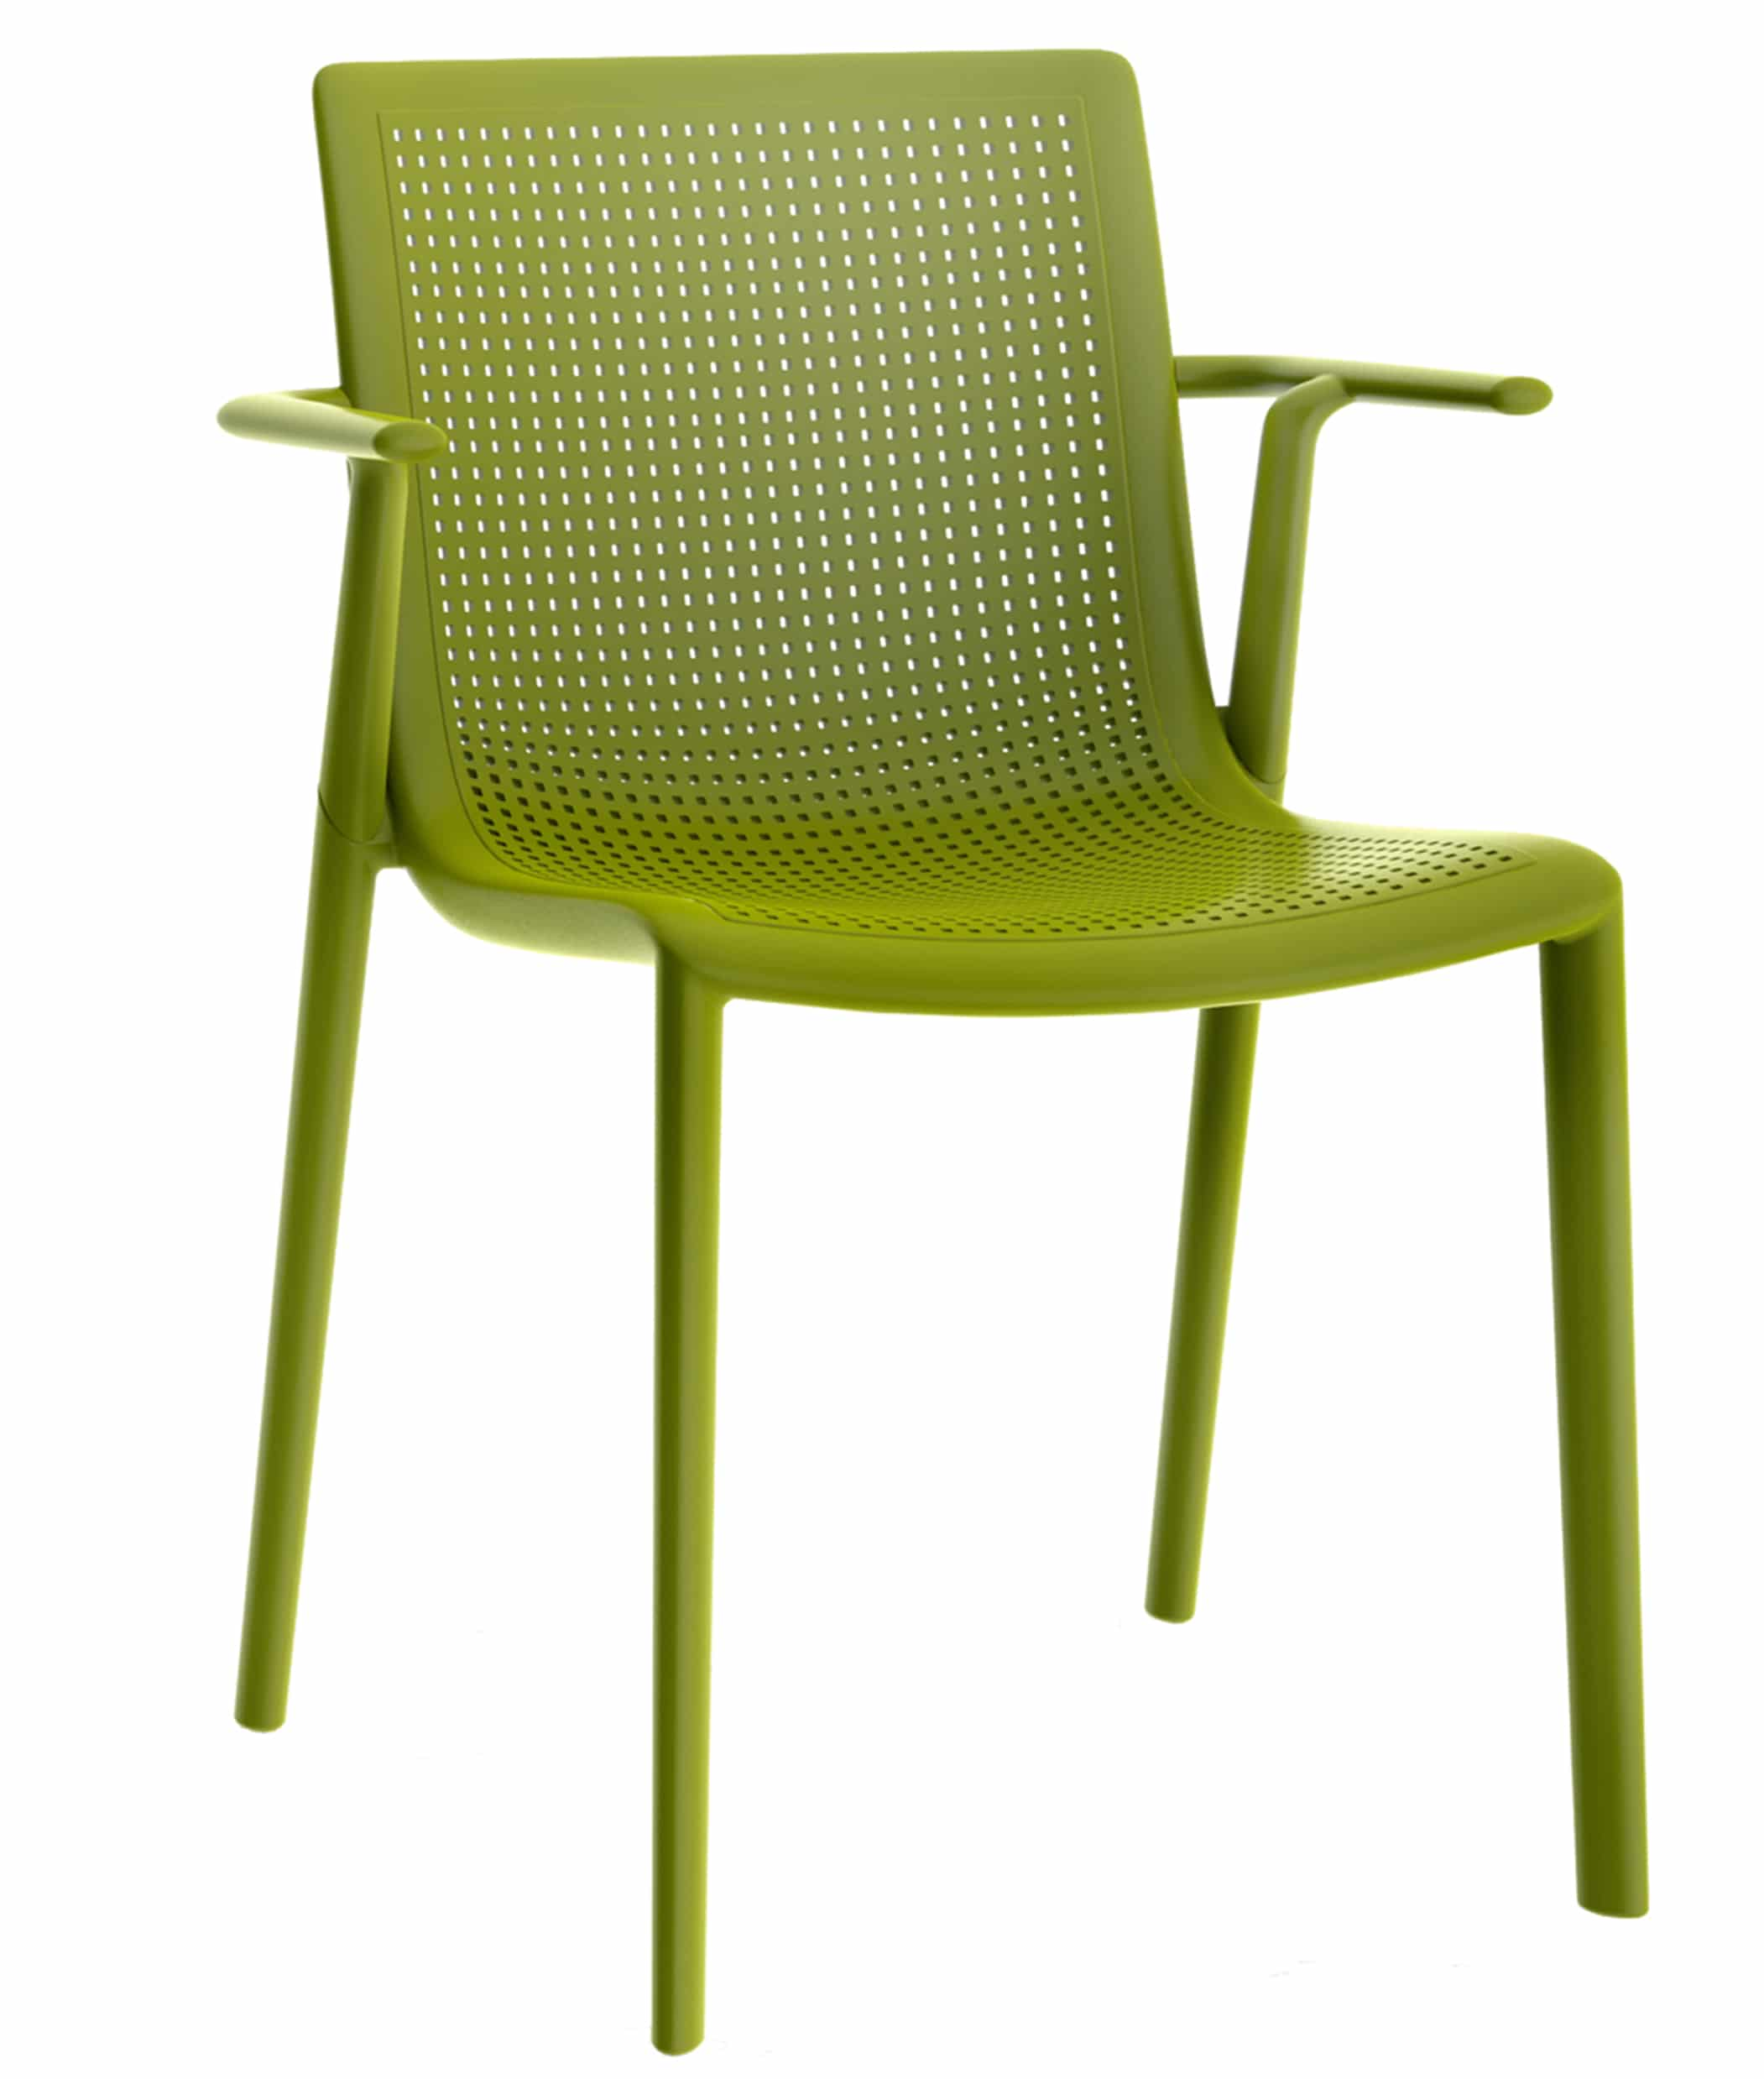 <p>Outdoor Furniture Contemporary Collection – Colorado Armchair – Olive-Green.</p> <p> </p> <p>Award-winning Armchair designed for indoor and outdoor use available in a variety of colours, stackable, capturing essential features such as lightness, stability, functionality, ergonomics and care for the environment.</p>